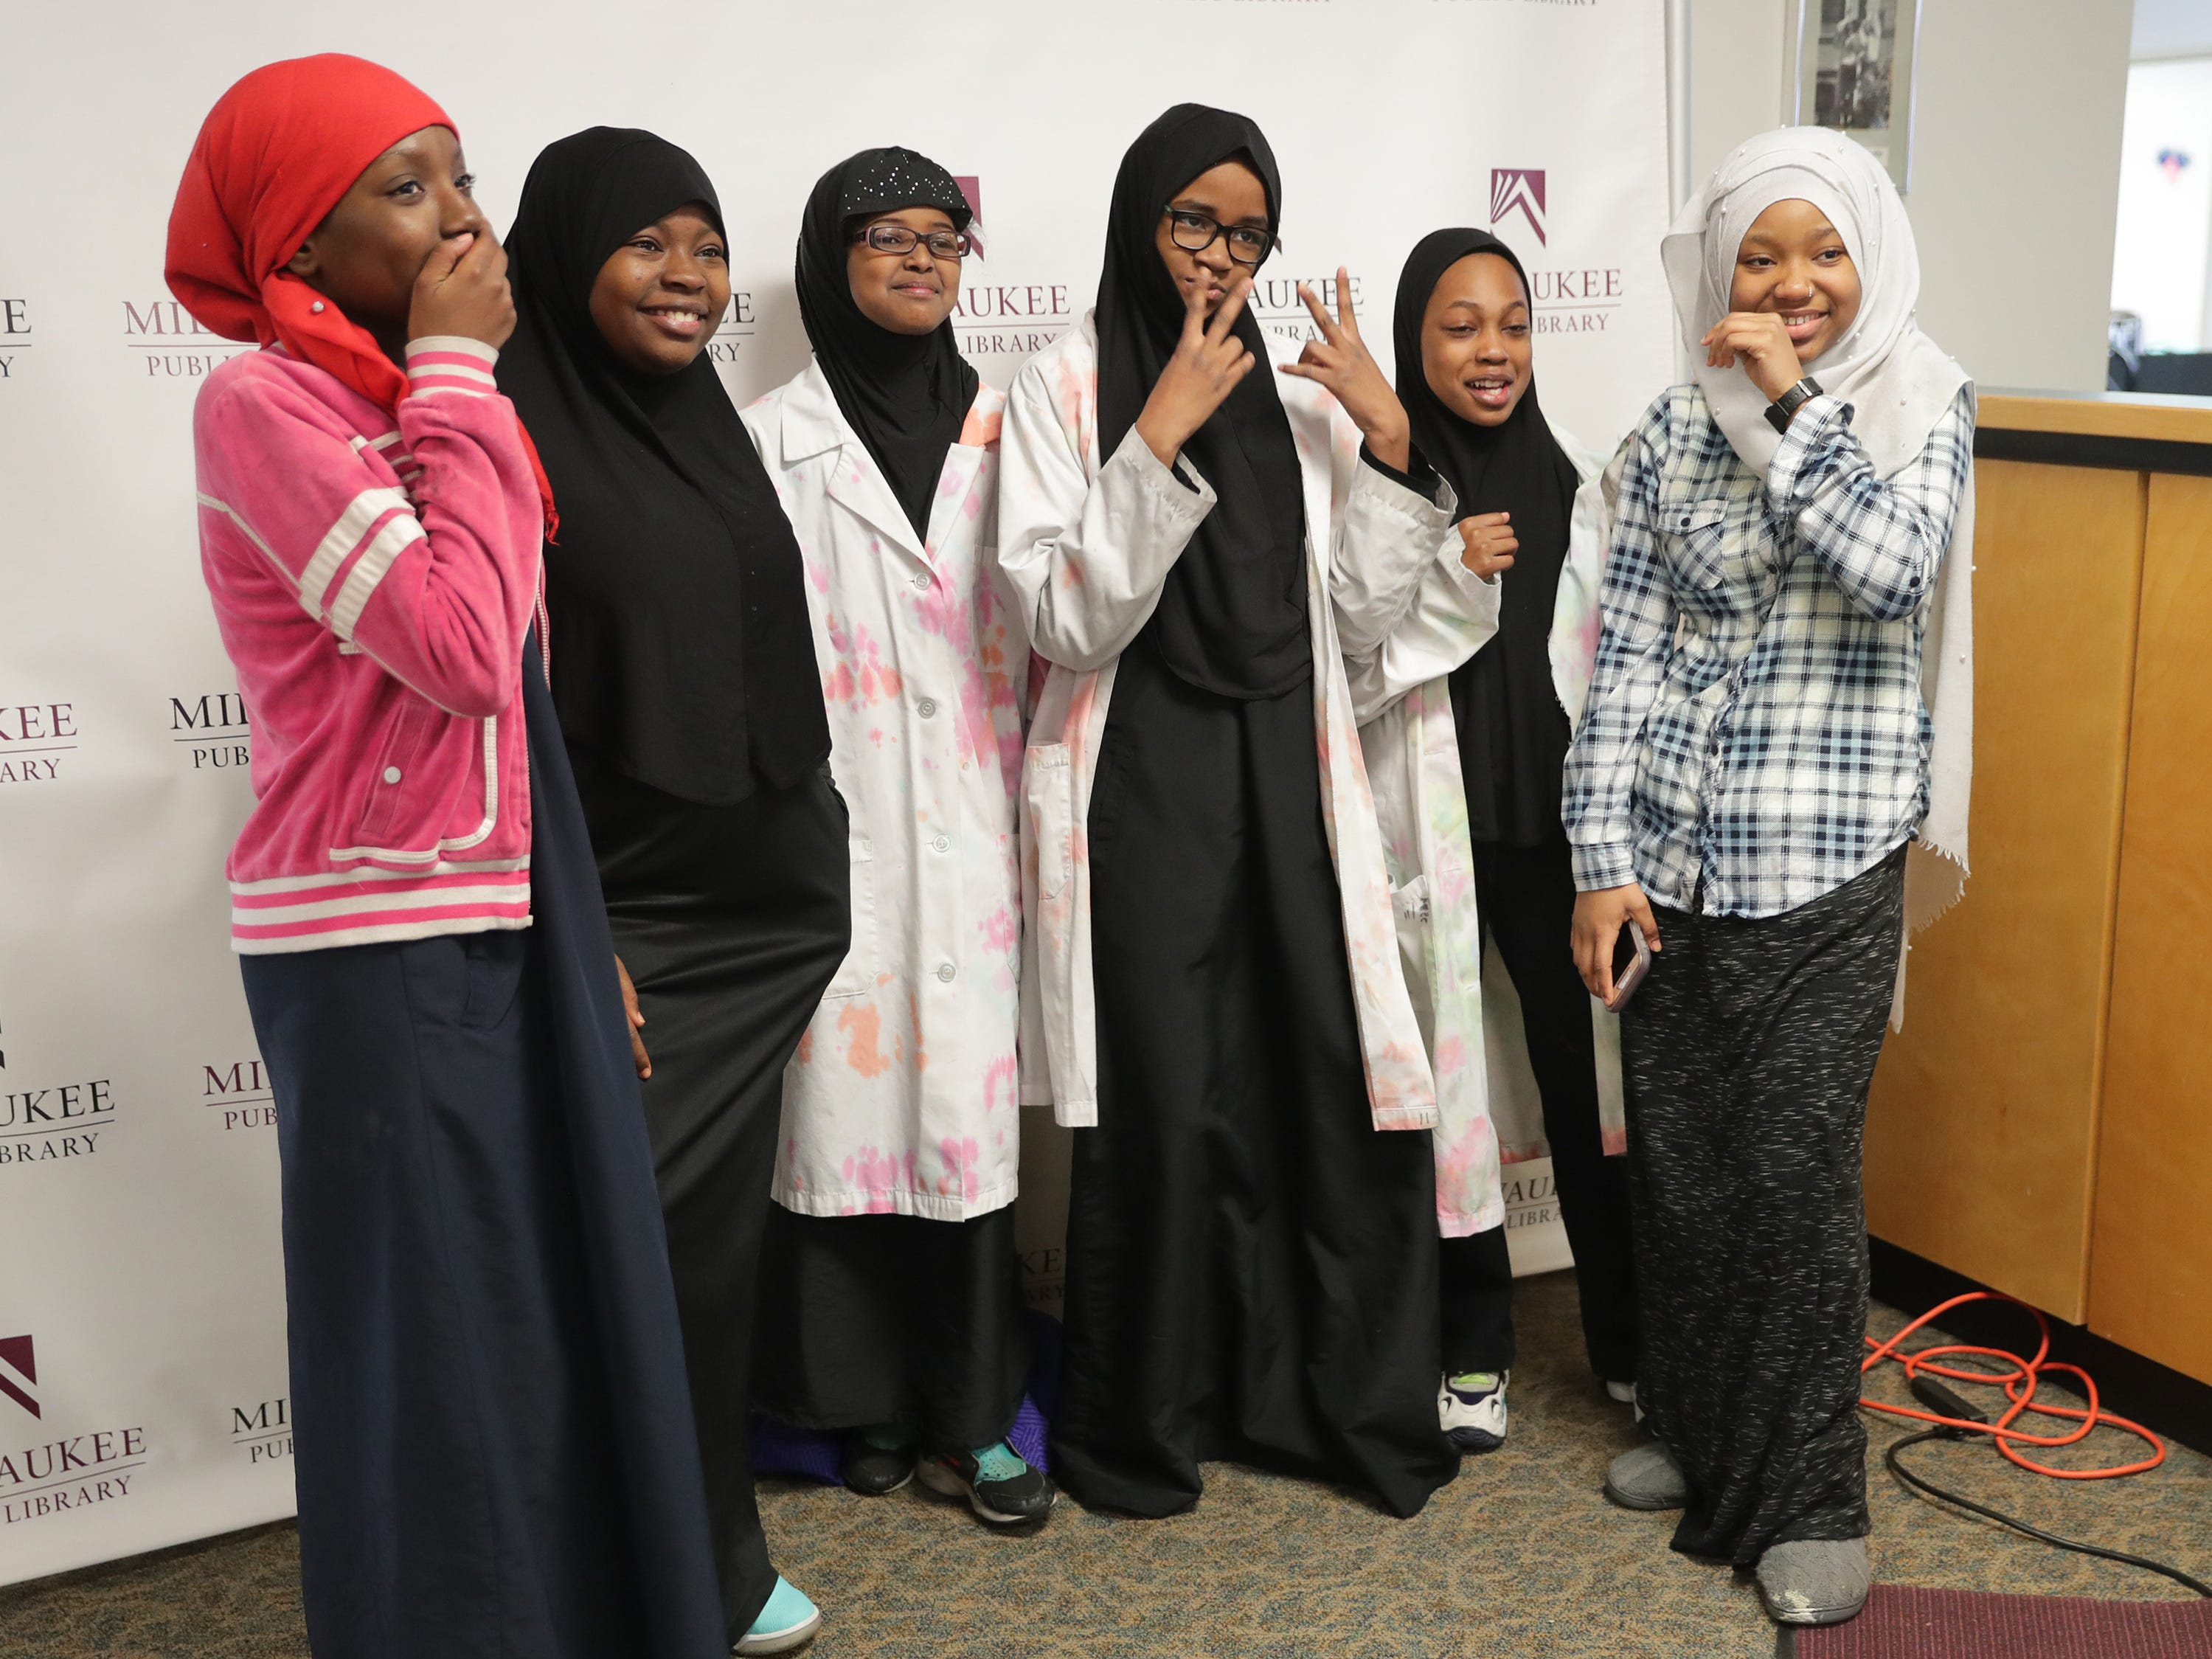 A group of students from Clara Mohammed School pose in the photo booth during a celebration of the life Dr. Martin Luther King Jr. at the King Library on West Locust Street in Milwaukee. With many Milwaukee Public Schools children off for the national holiday, the library featured activities and crafts for the whole family.